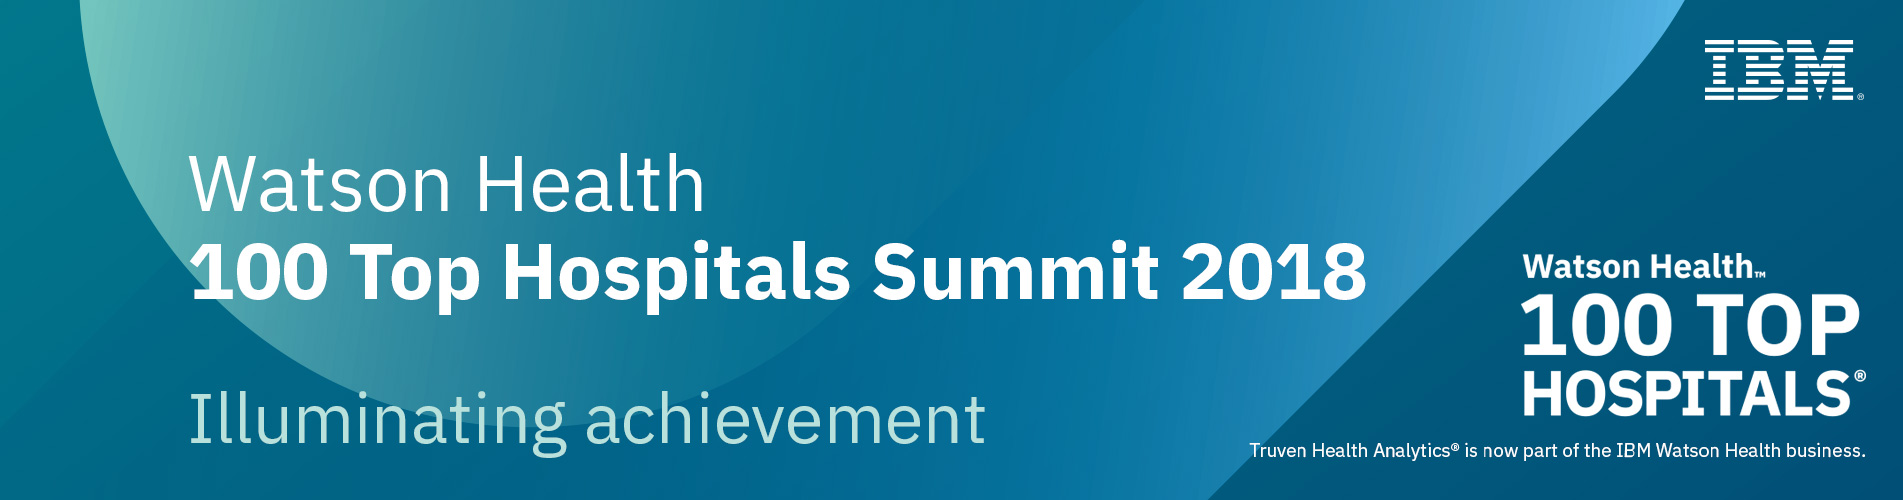 Watson Health 100 Top Hospitals Summit 2018